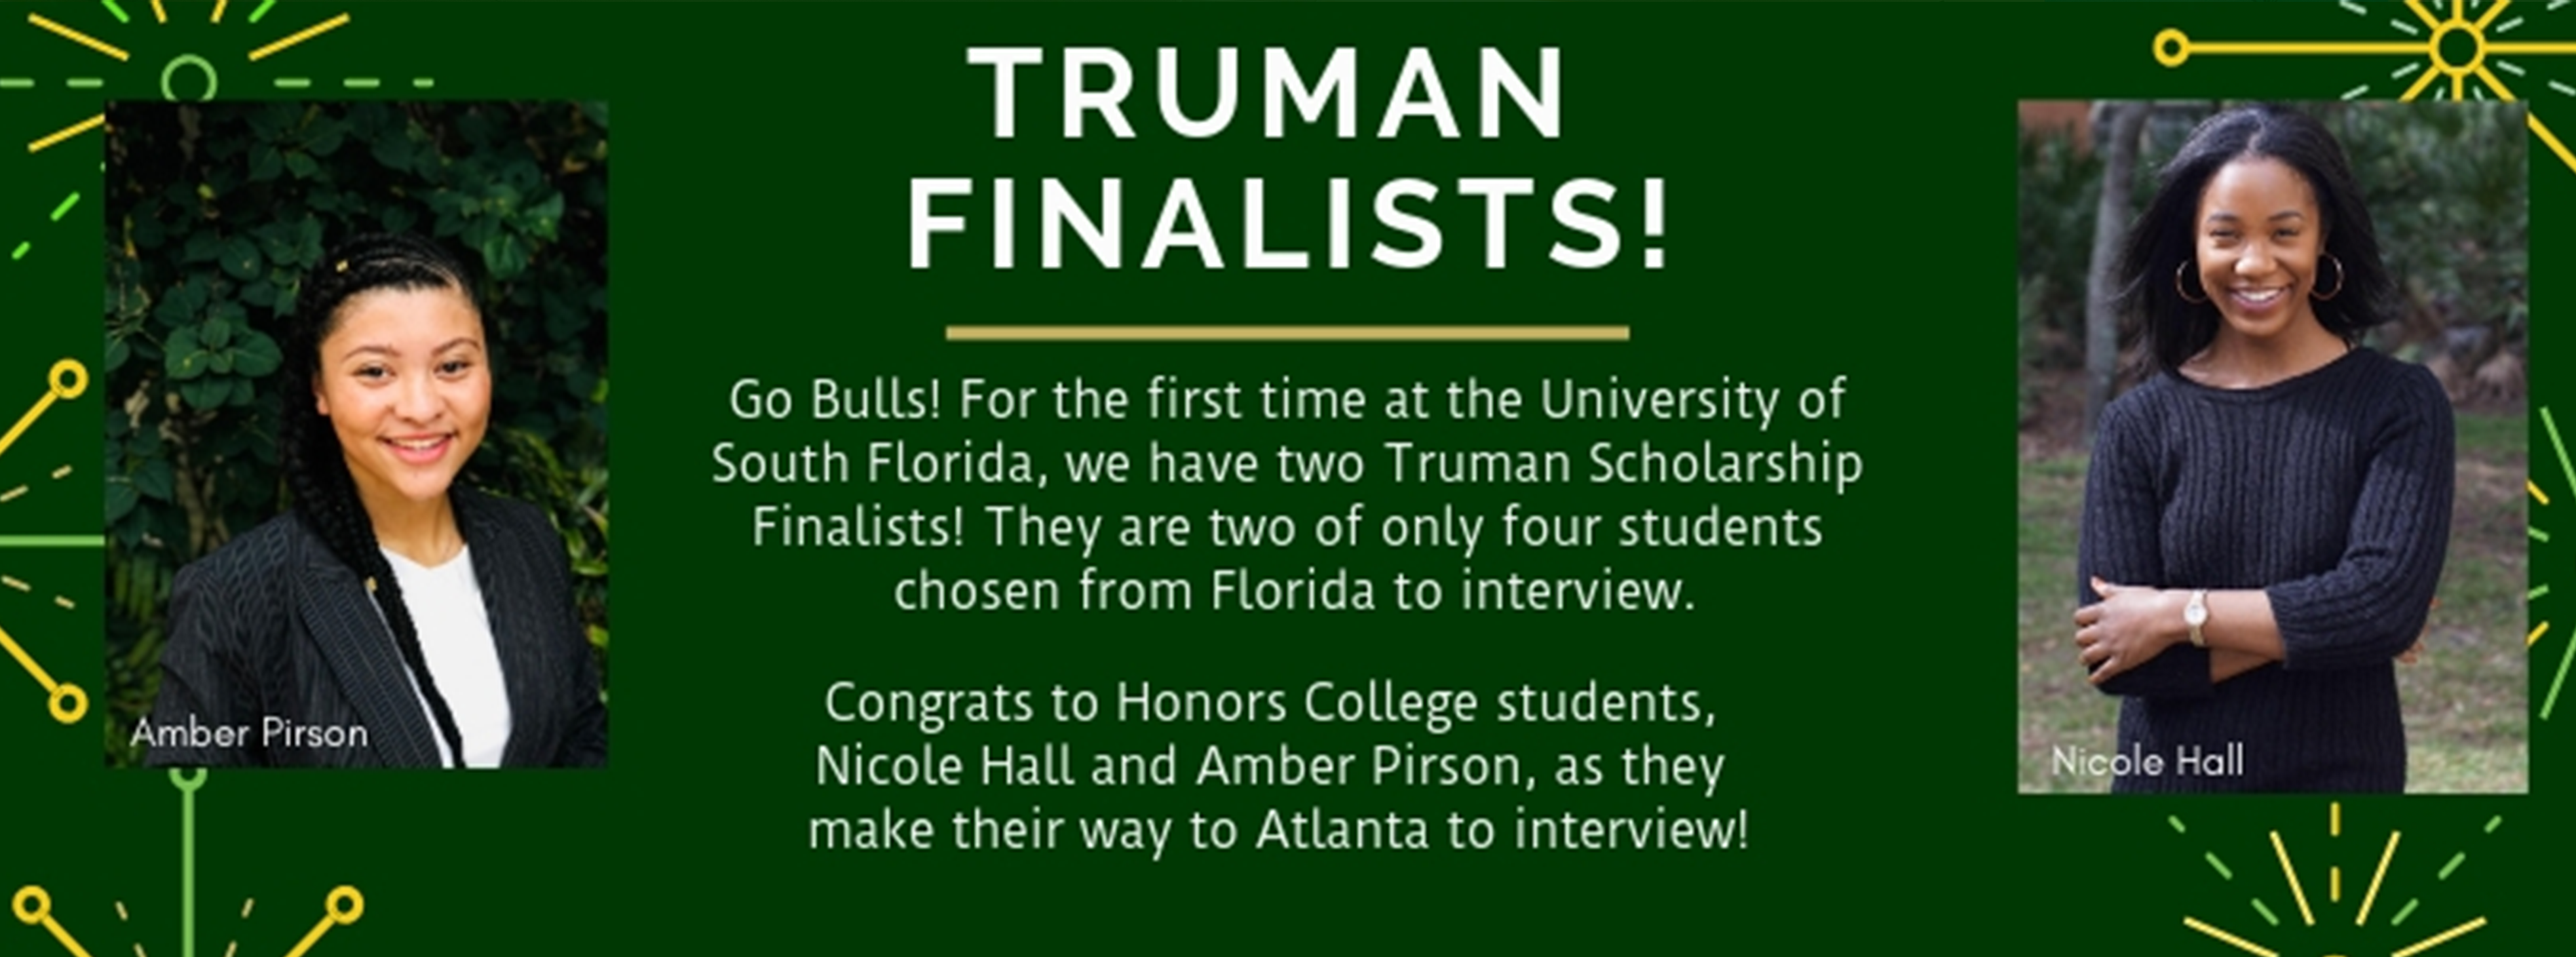 Honors students, Amber and Nicole, are named Truman finalists!